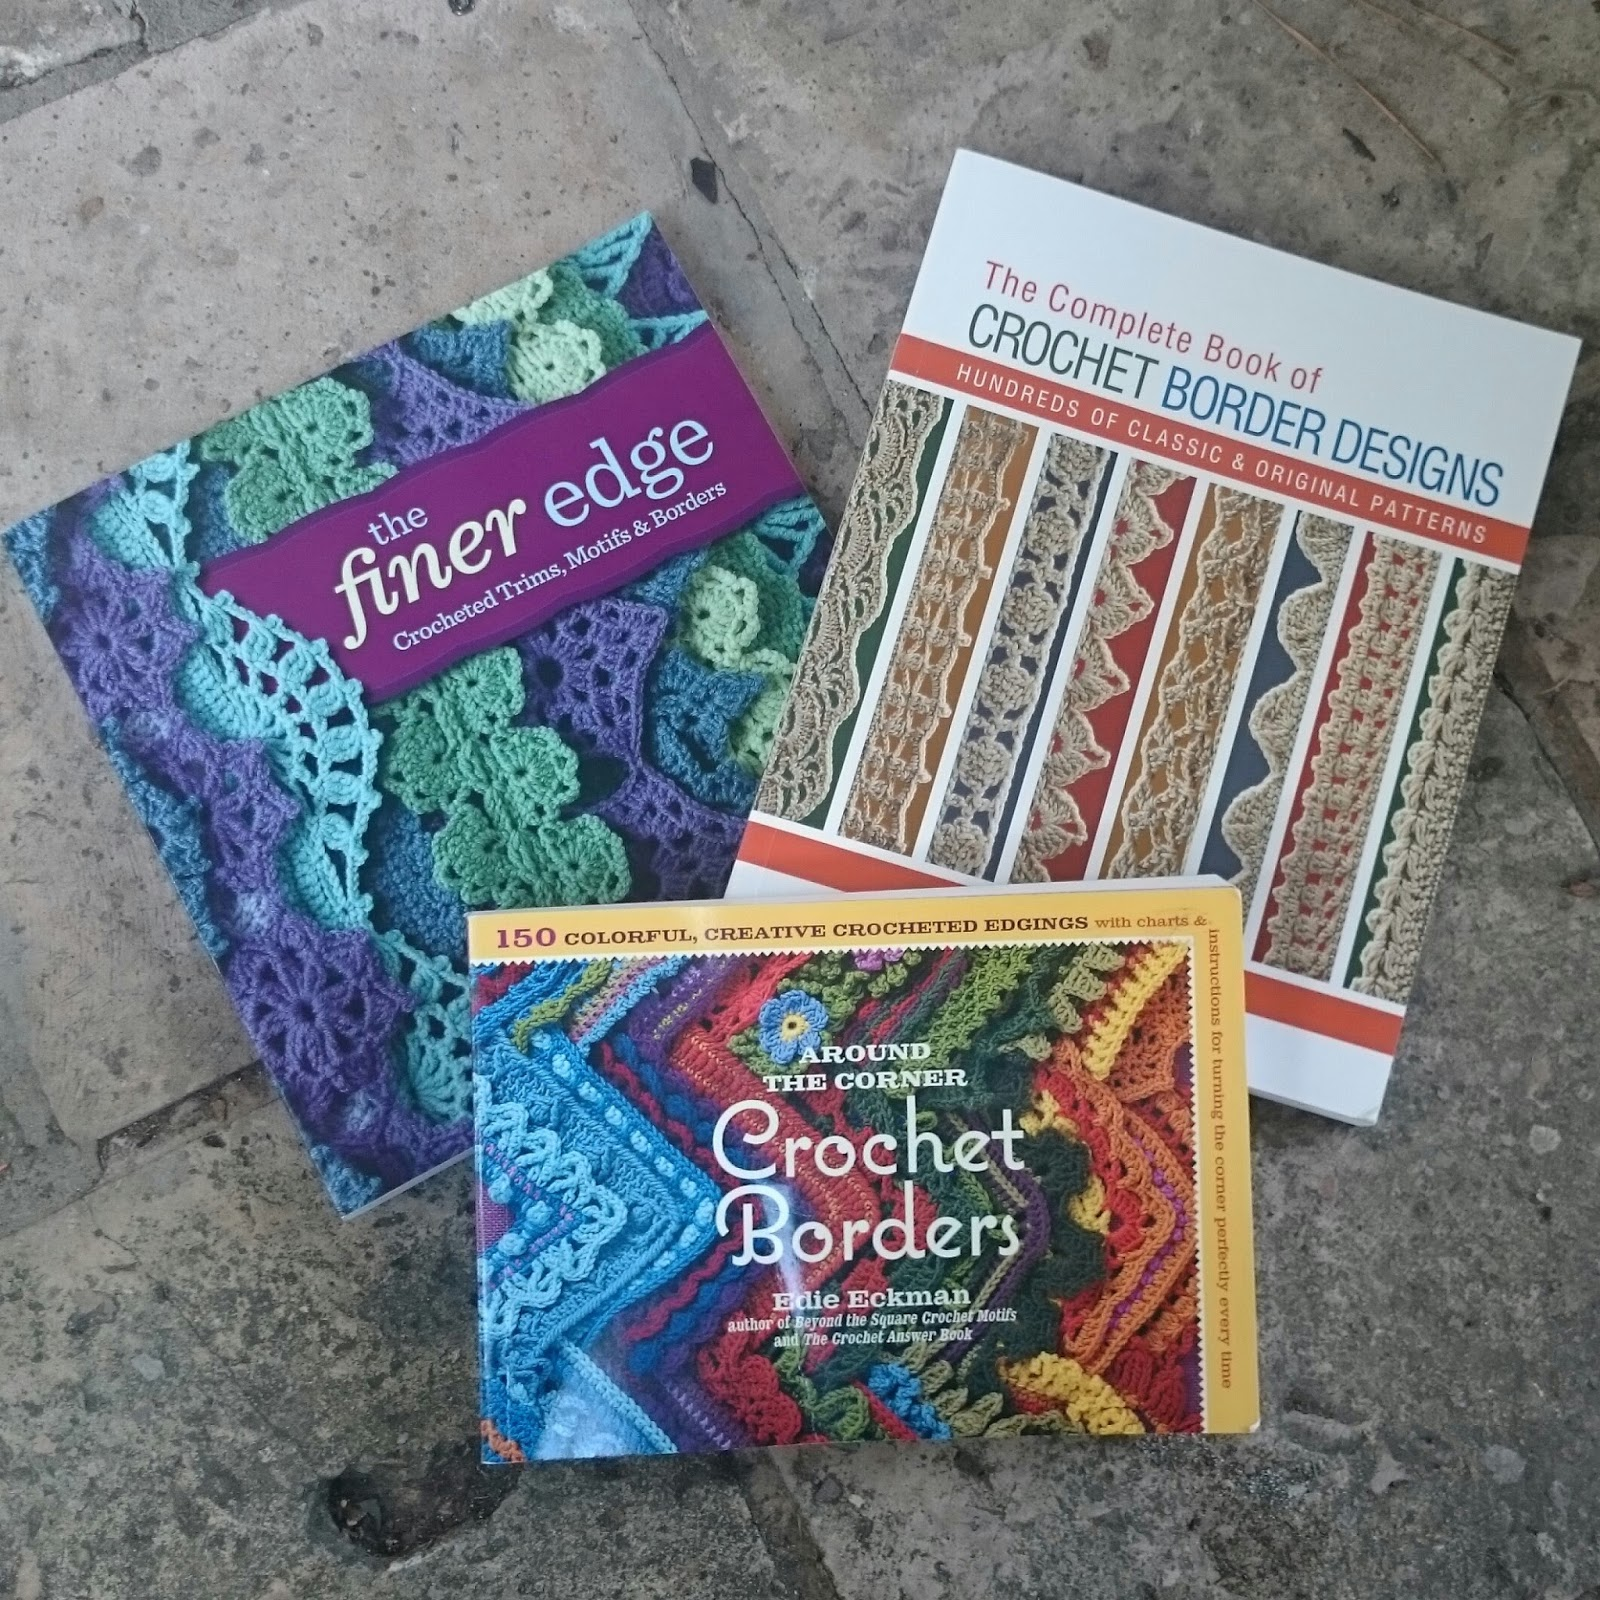 Crafty Escapism 2016 Squarecrochetmotifpatterndiagram I Did A Lot Of Preparation For The Program As Well Watching Edie Eckmans Wonderful Craftsy Class On Borders Reviewed Here This Blog